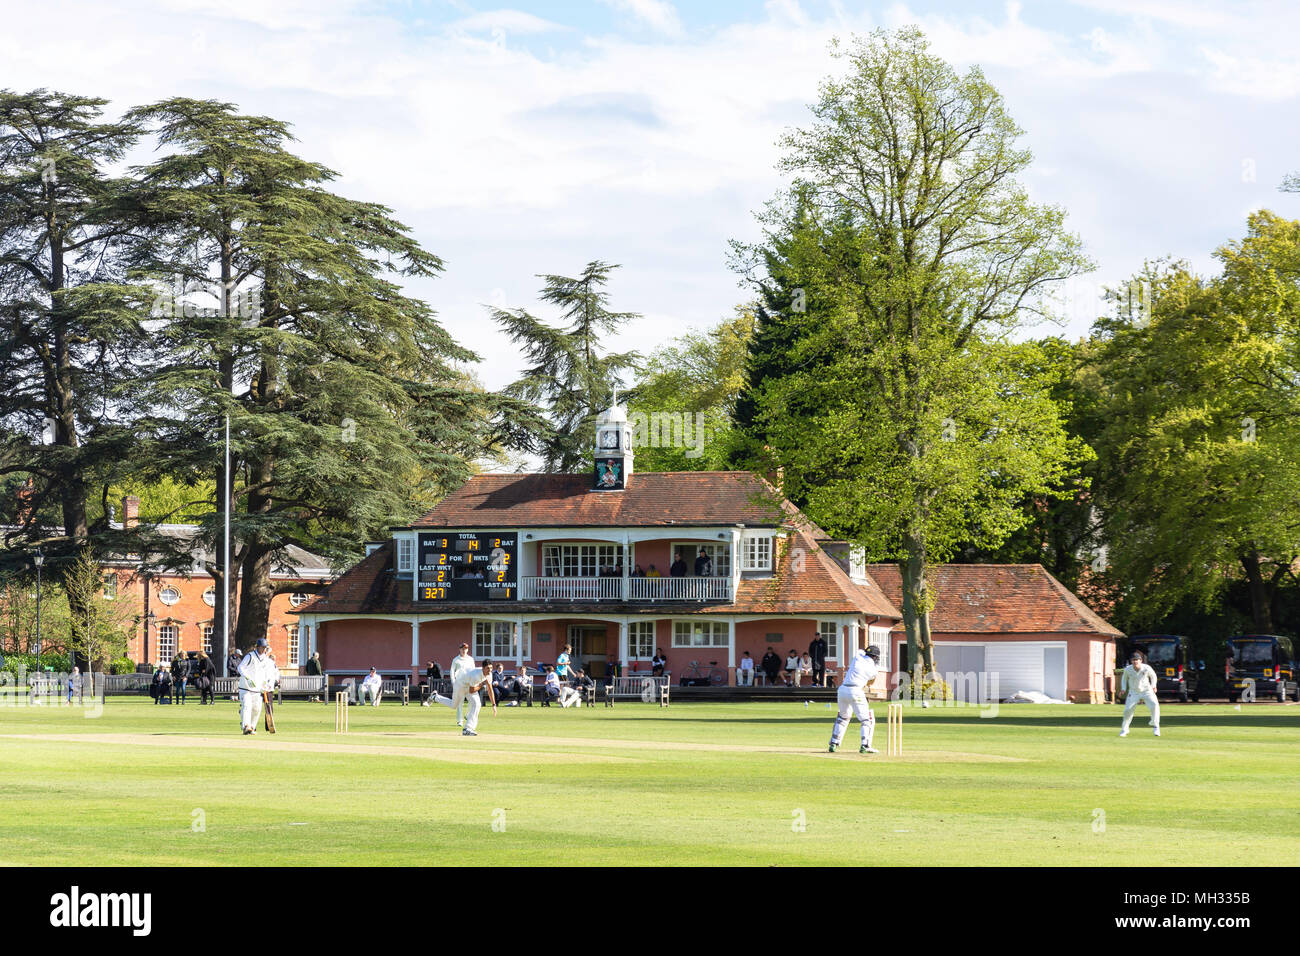 Schools cricket match (Christ's College NZ vs Wellington 1st XI) at Wellington College, Crowthorne, Berkshire, United Kingdom - Stock Image